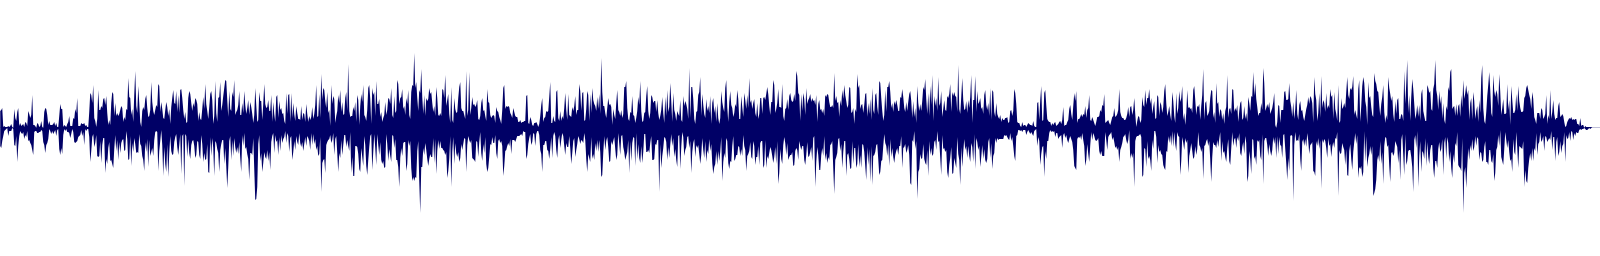 waveform of track #90156